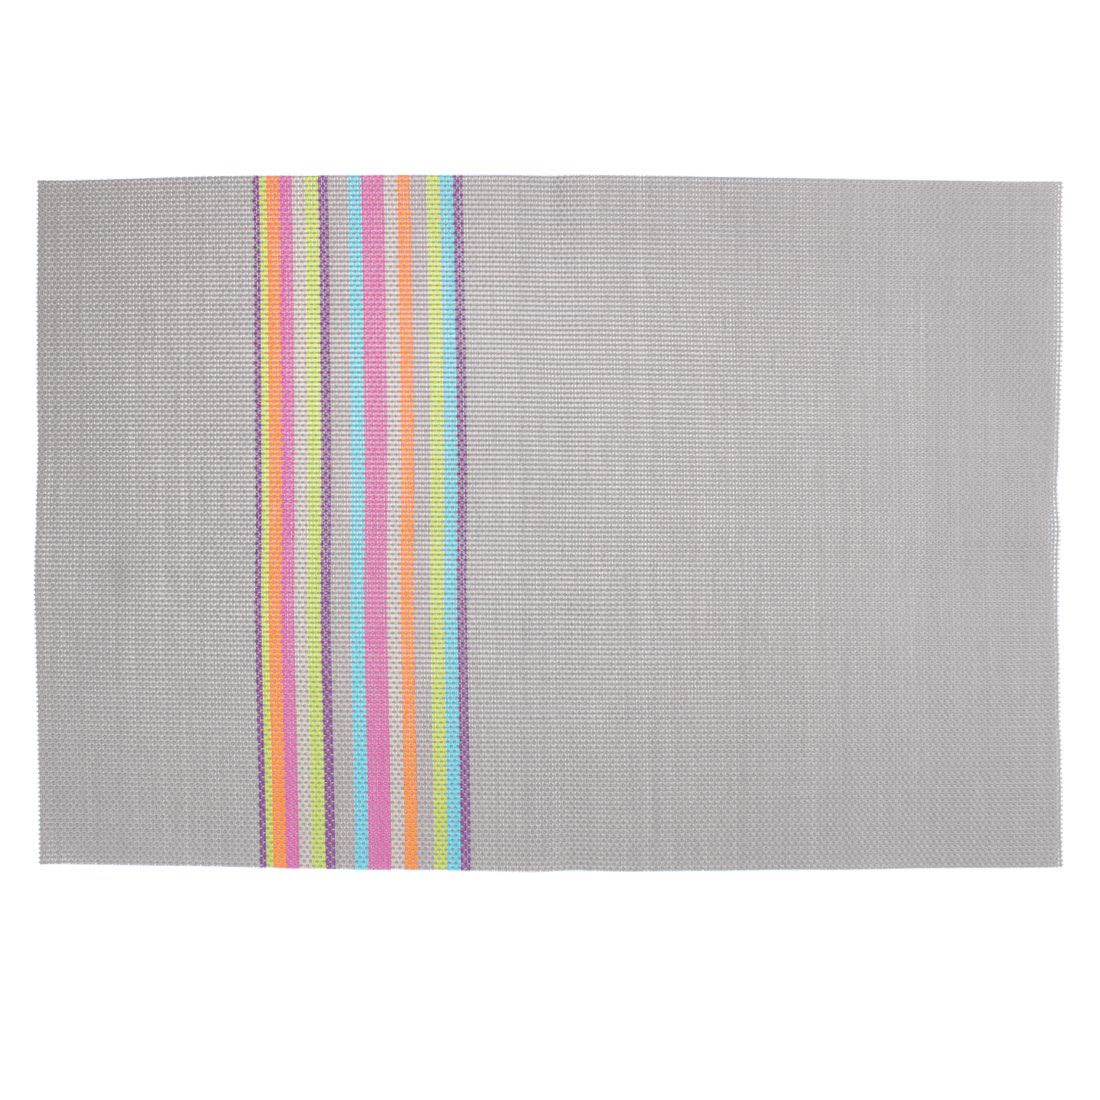 Gray PVC Handmade Weave Stripe Dining Table Mat Placemat Coaster